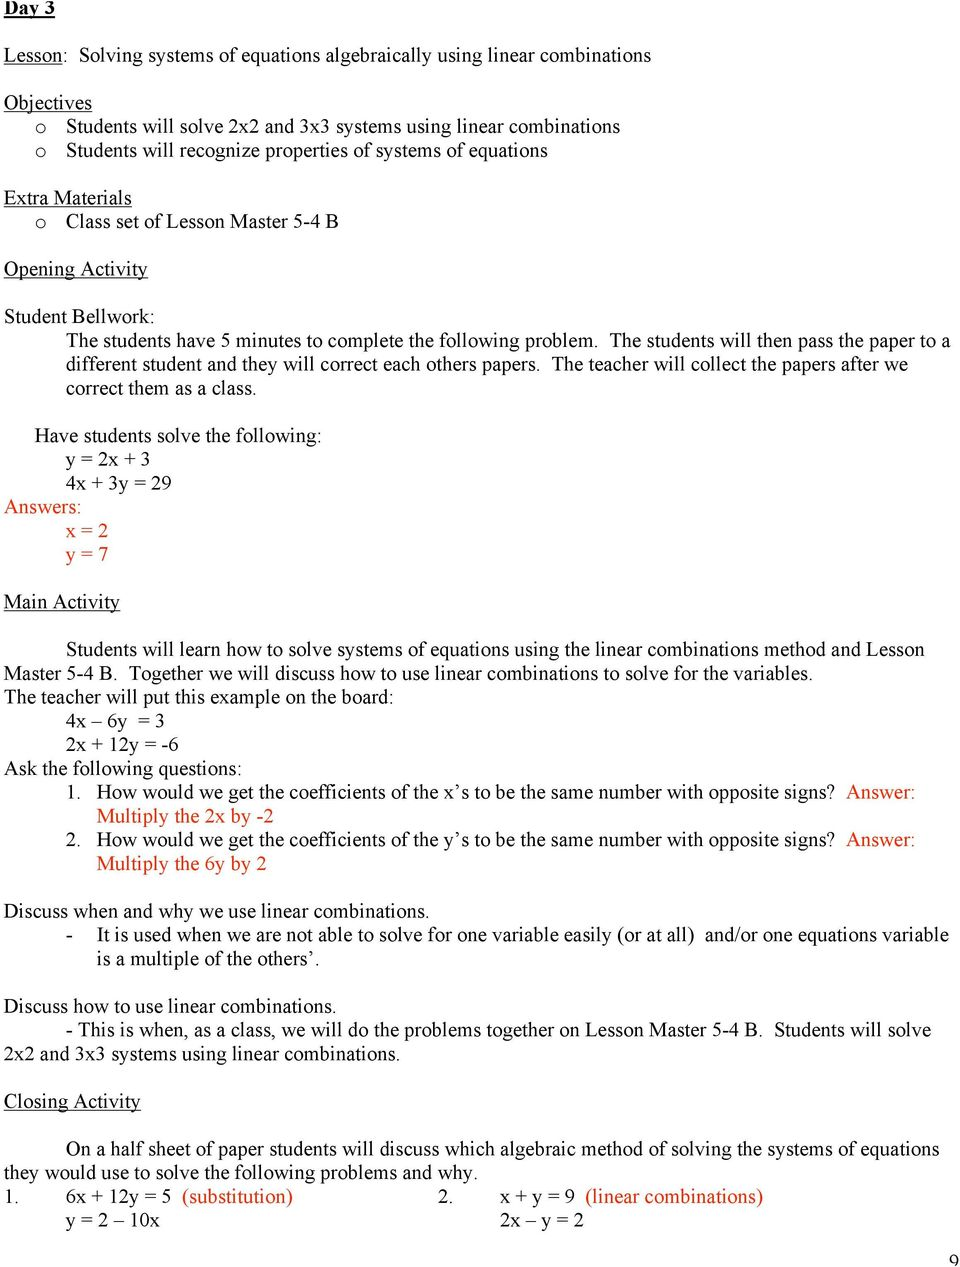 Solving Systems of Equations  11 th Grade 7-Day Unit Plan - PDF